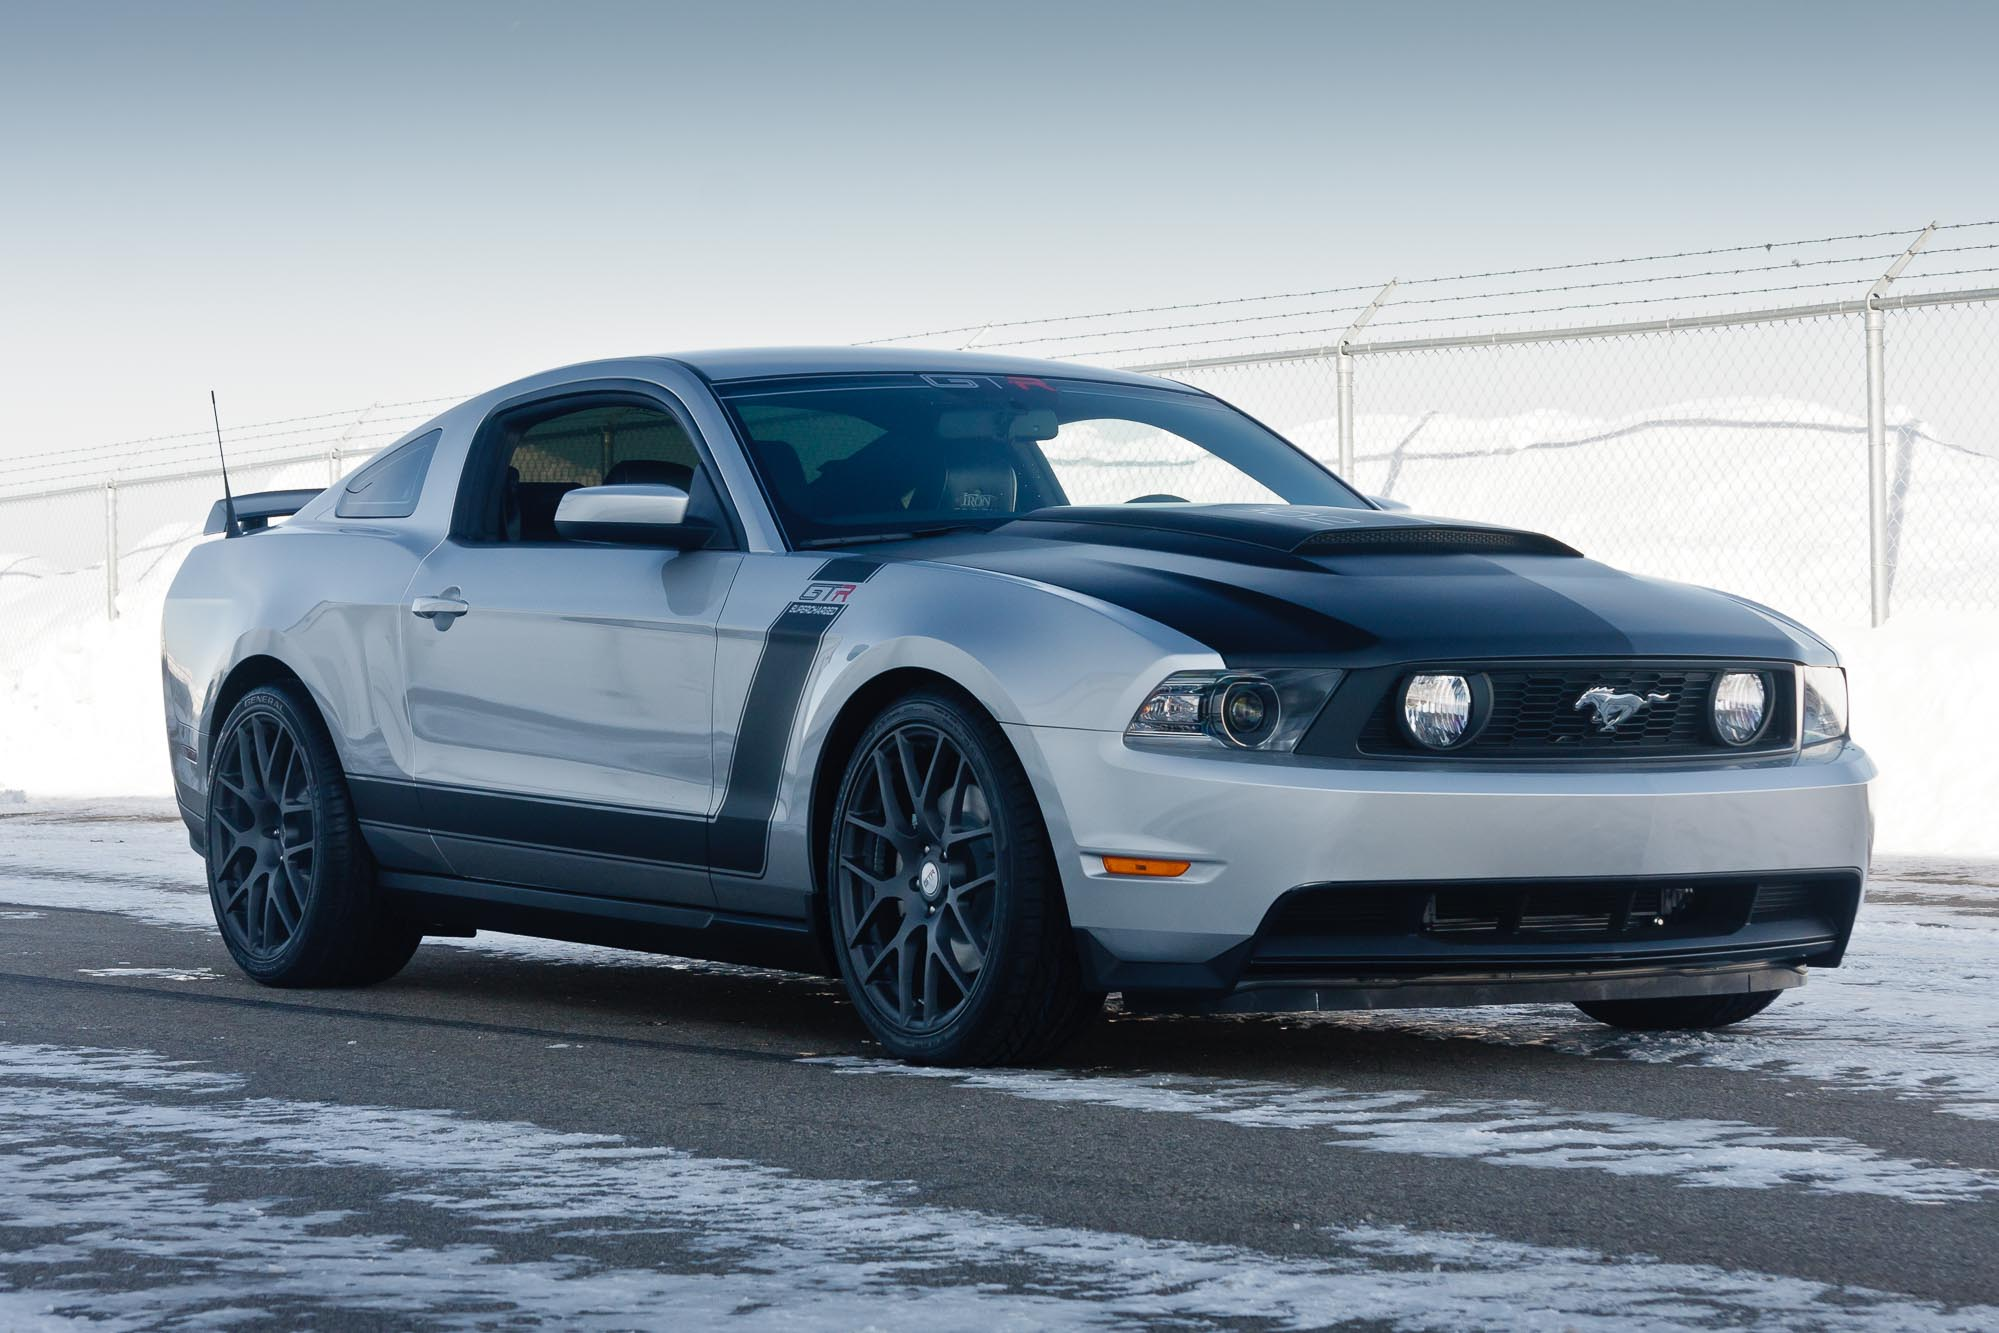 2011 Mustang For Sale >> 2011 Iron Edition Mustang GTR - Sold - The Iron Garage